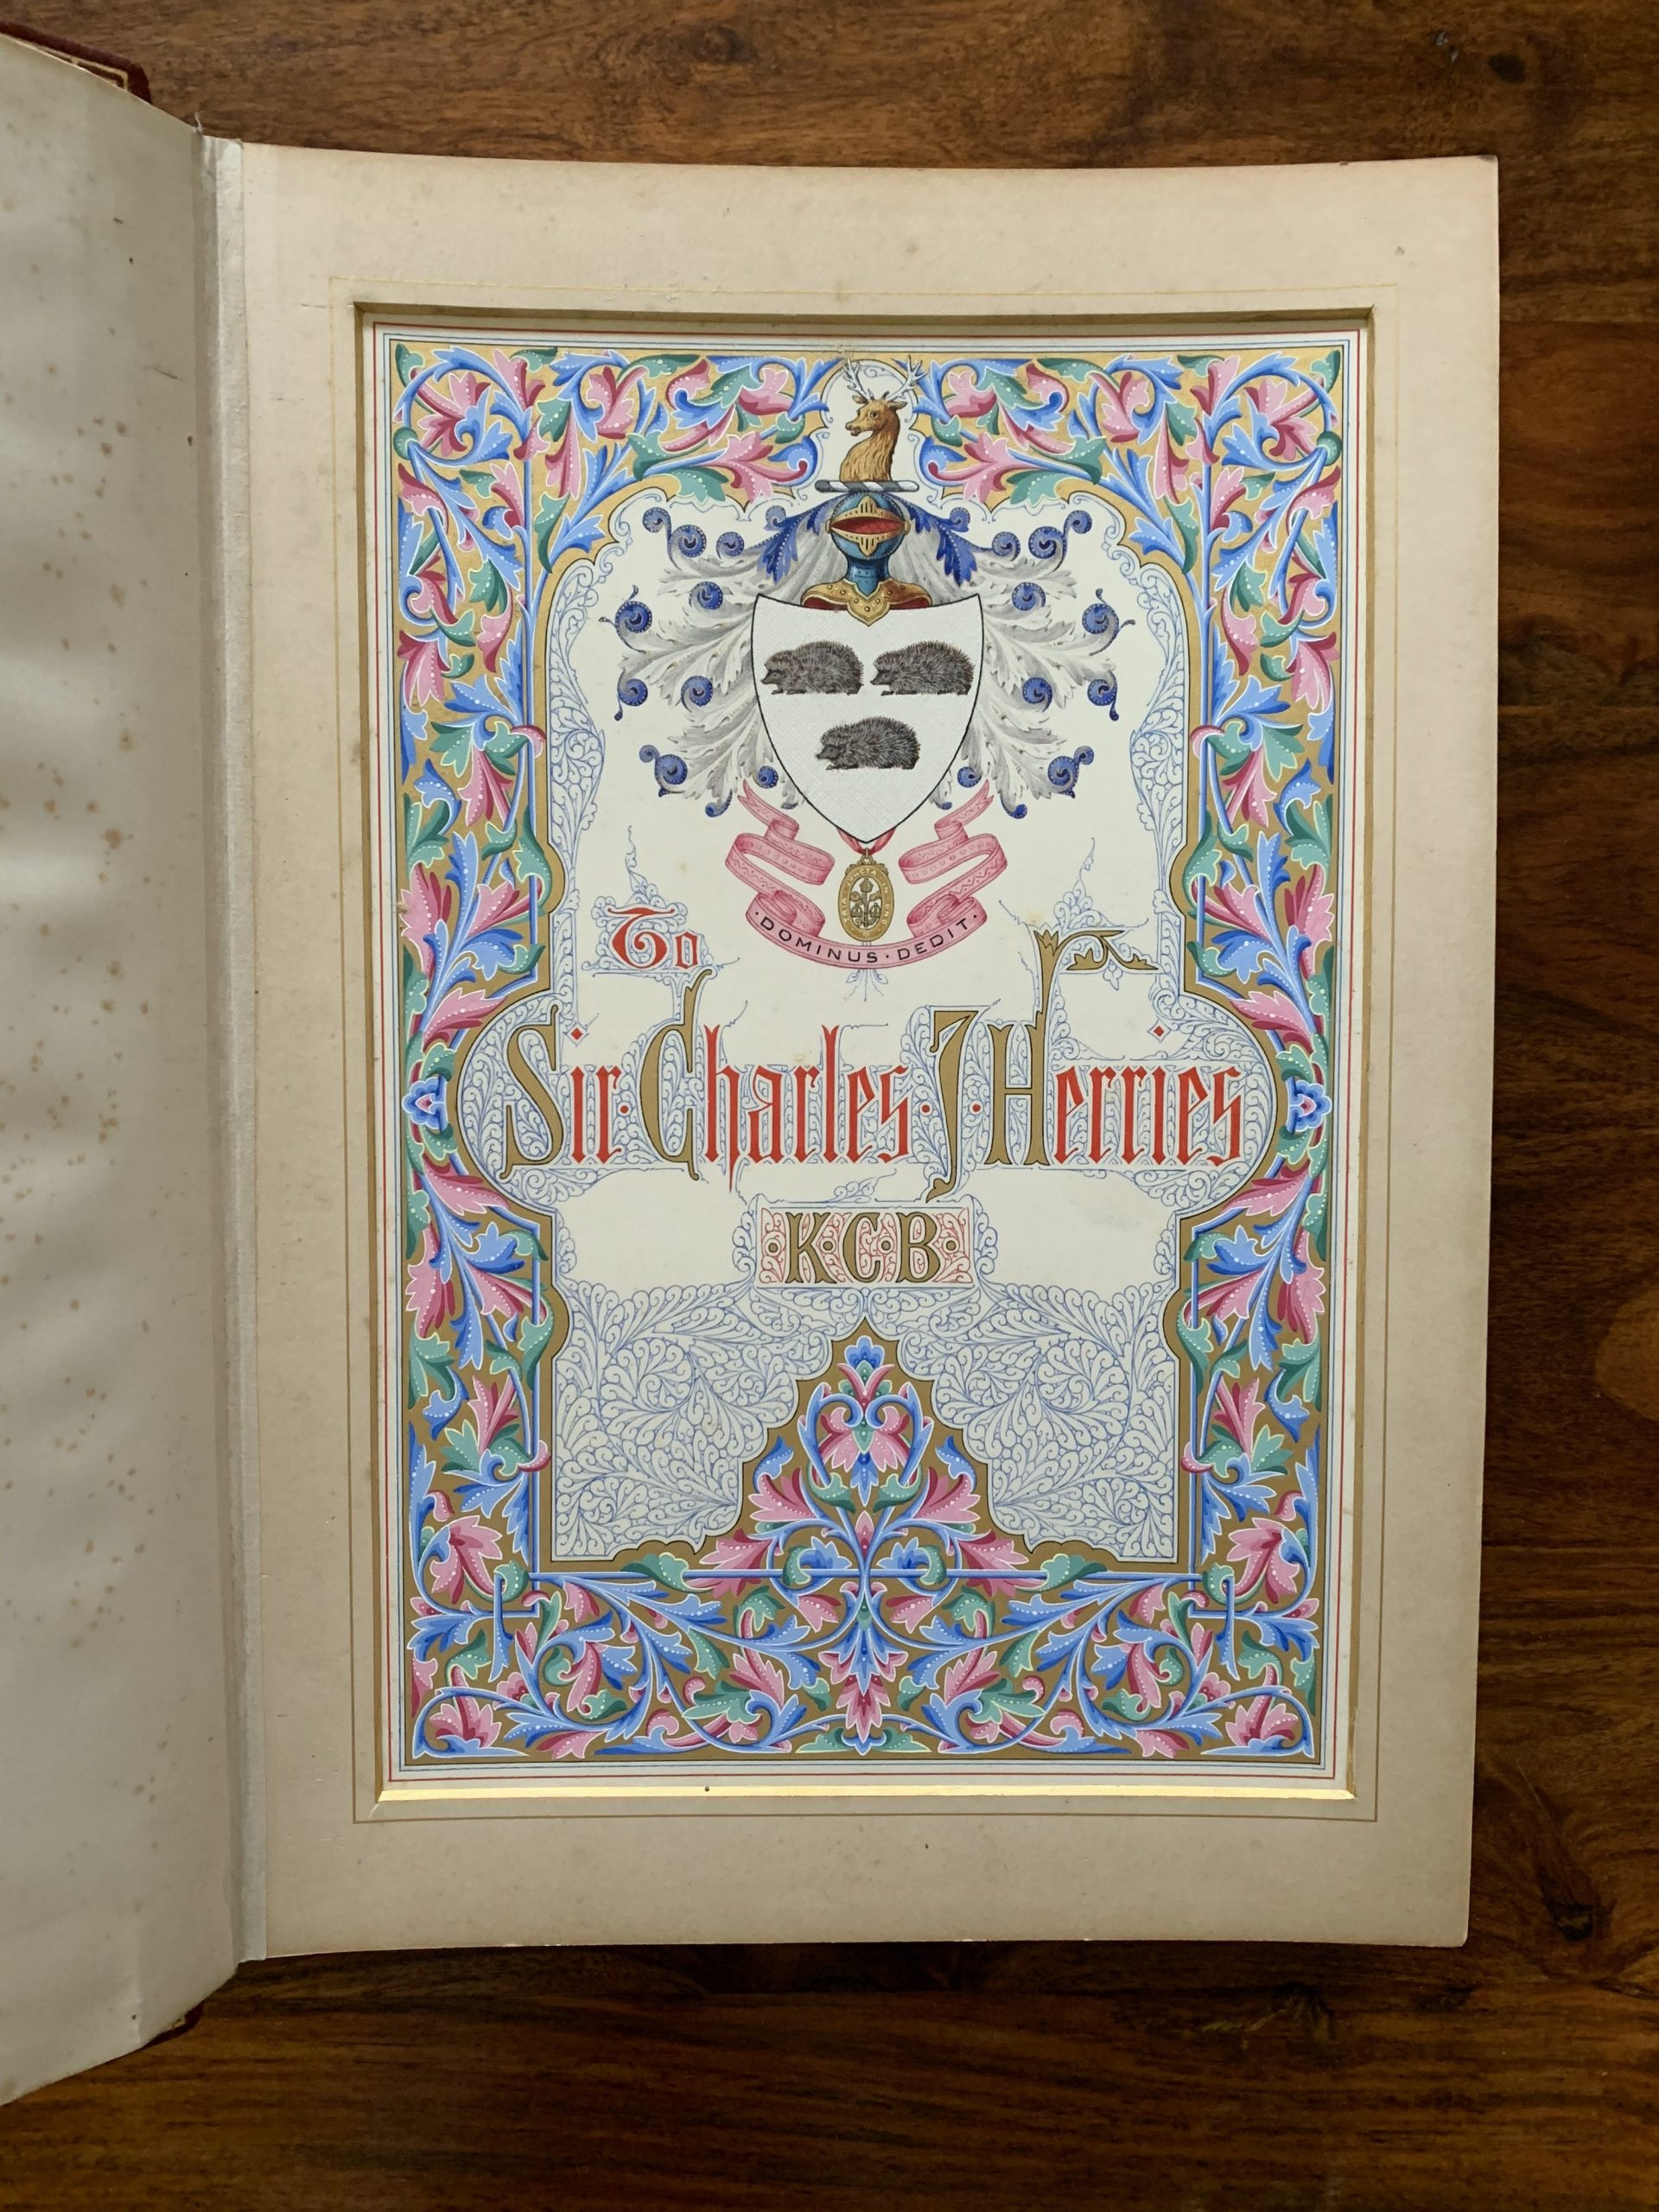 ILLUMINATED TESTIMONIAL FOR SIR CHARLES HERRIES